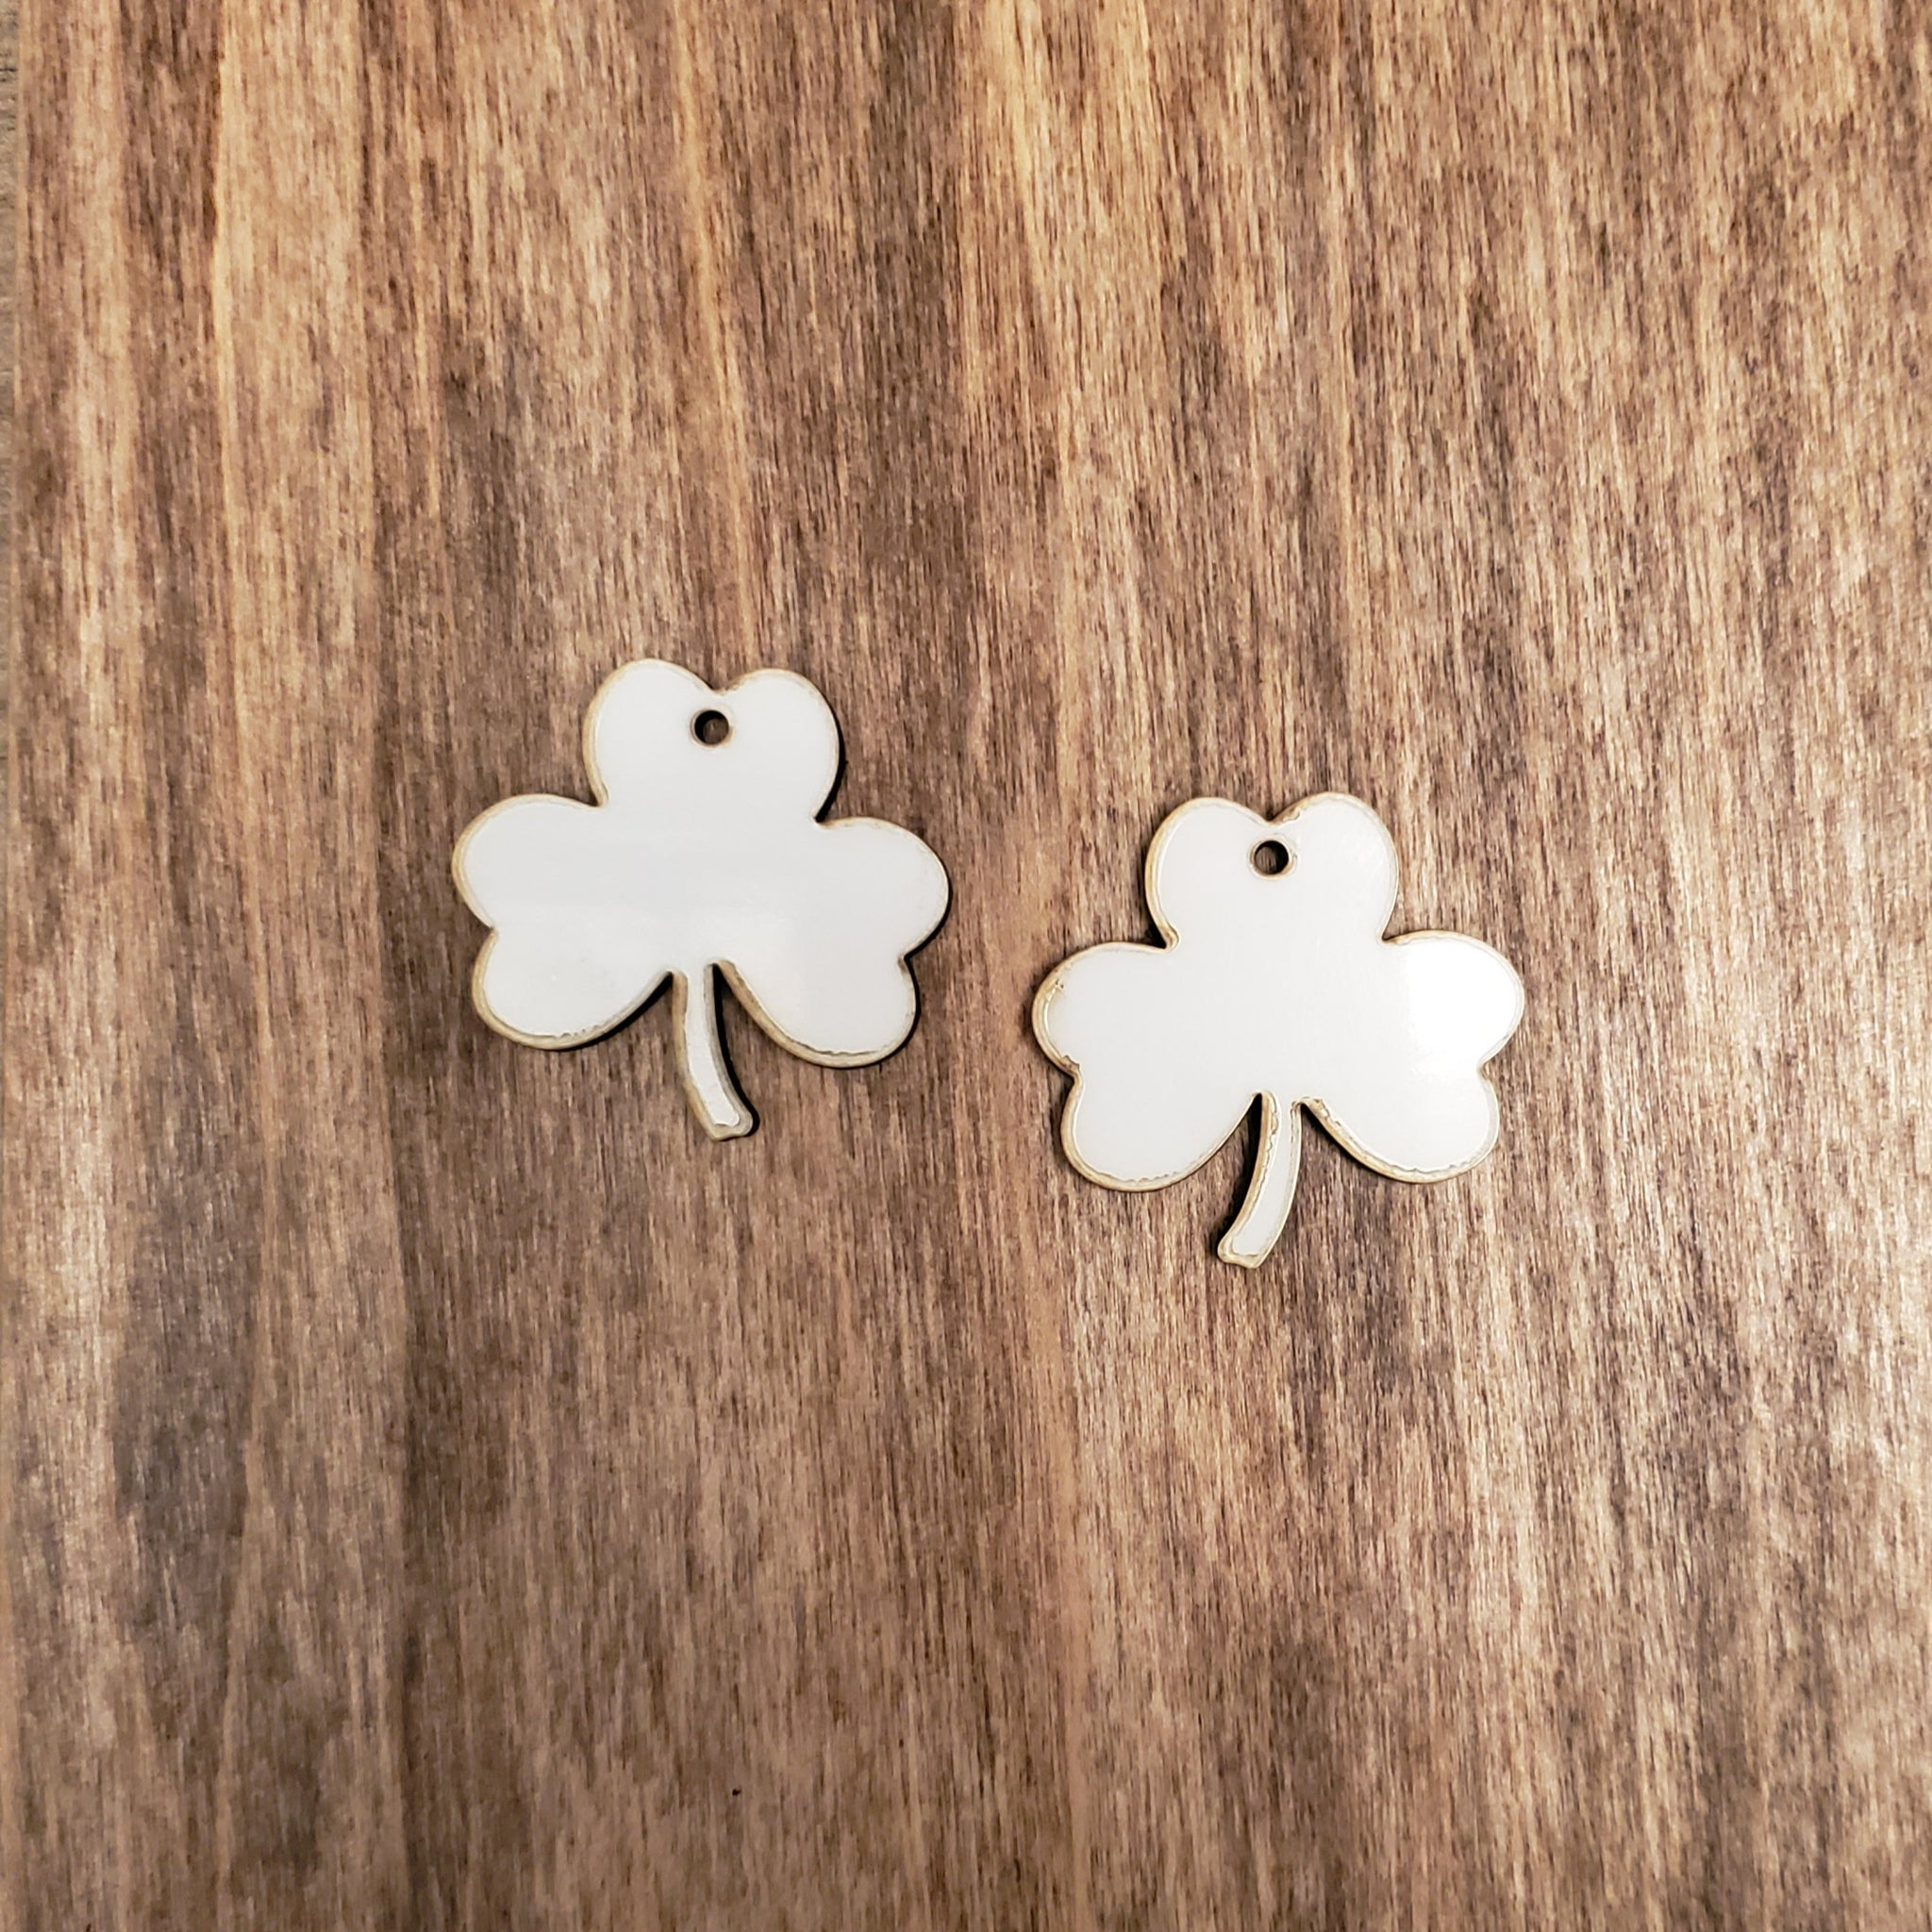 Sublimation hardboard blanks, shamrock earring sublimation blanks, SINGLE or DOUBLE-sided shamrock dangle earring shape blanks